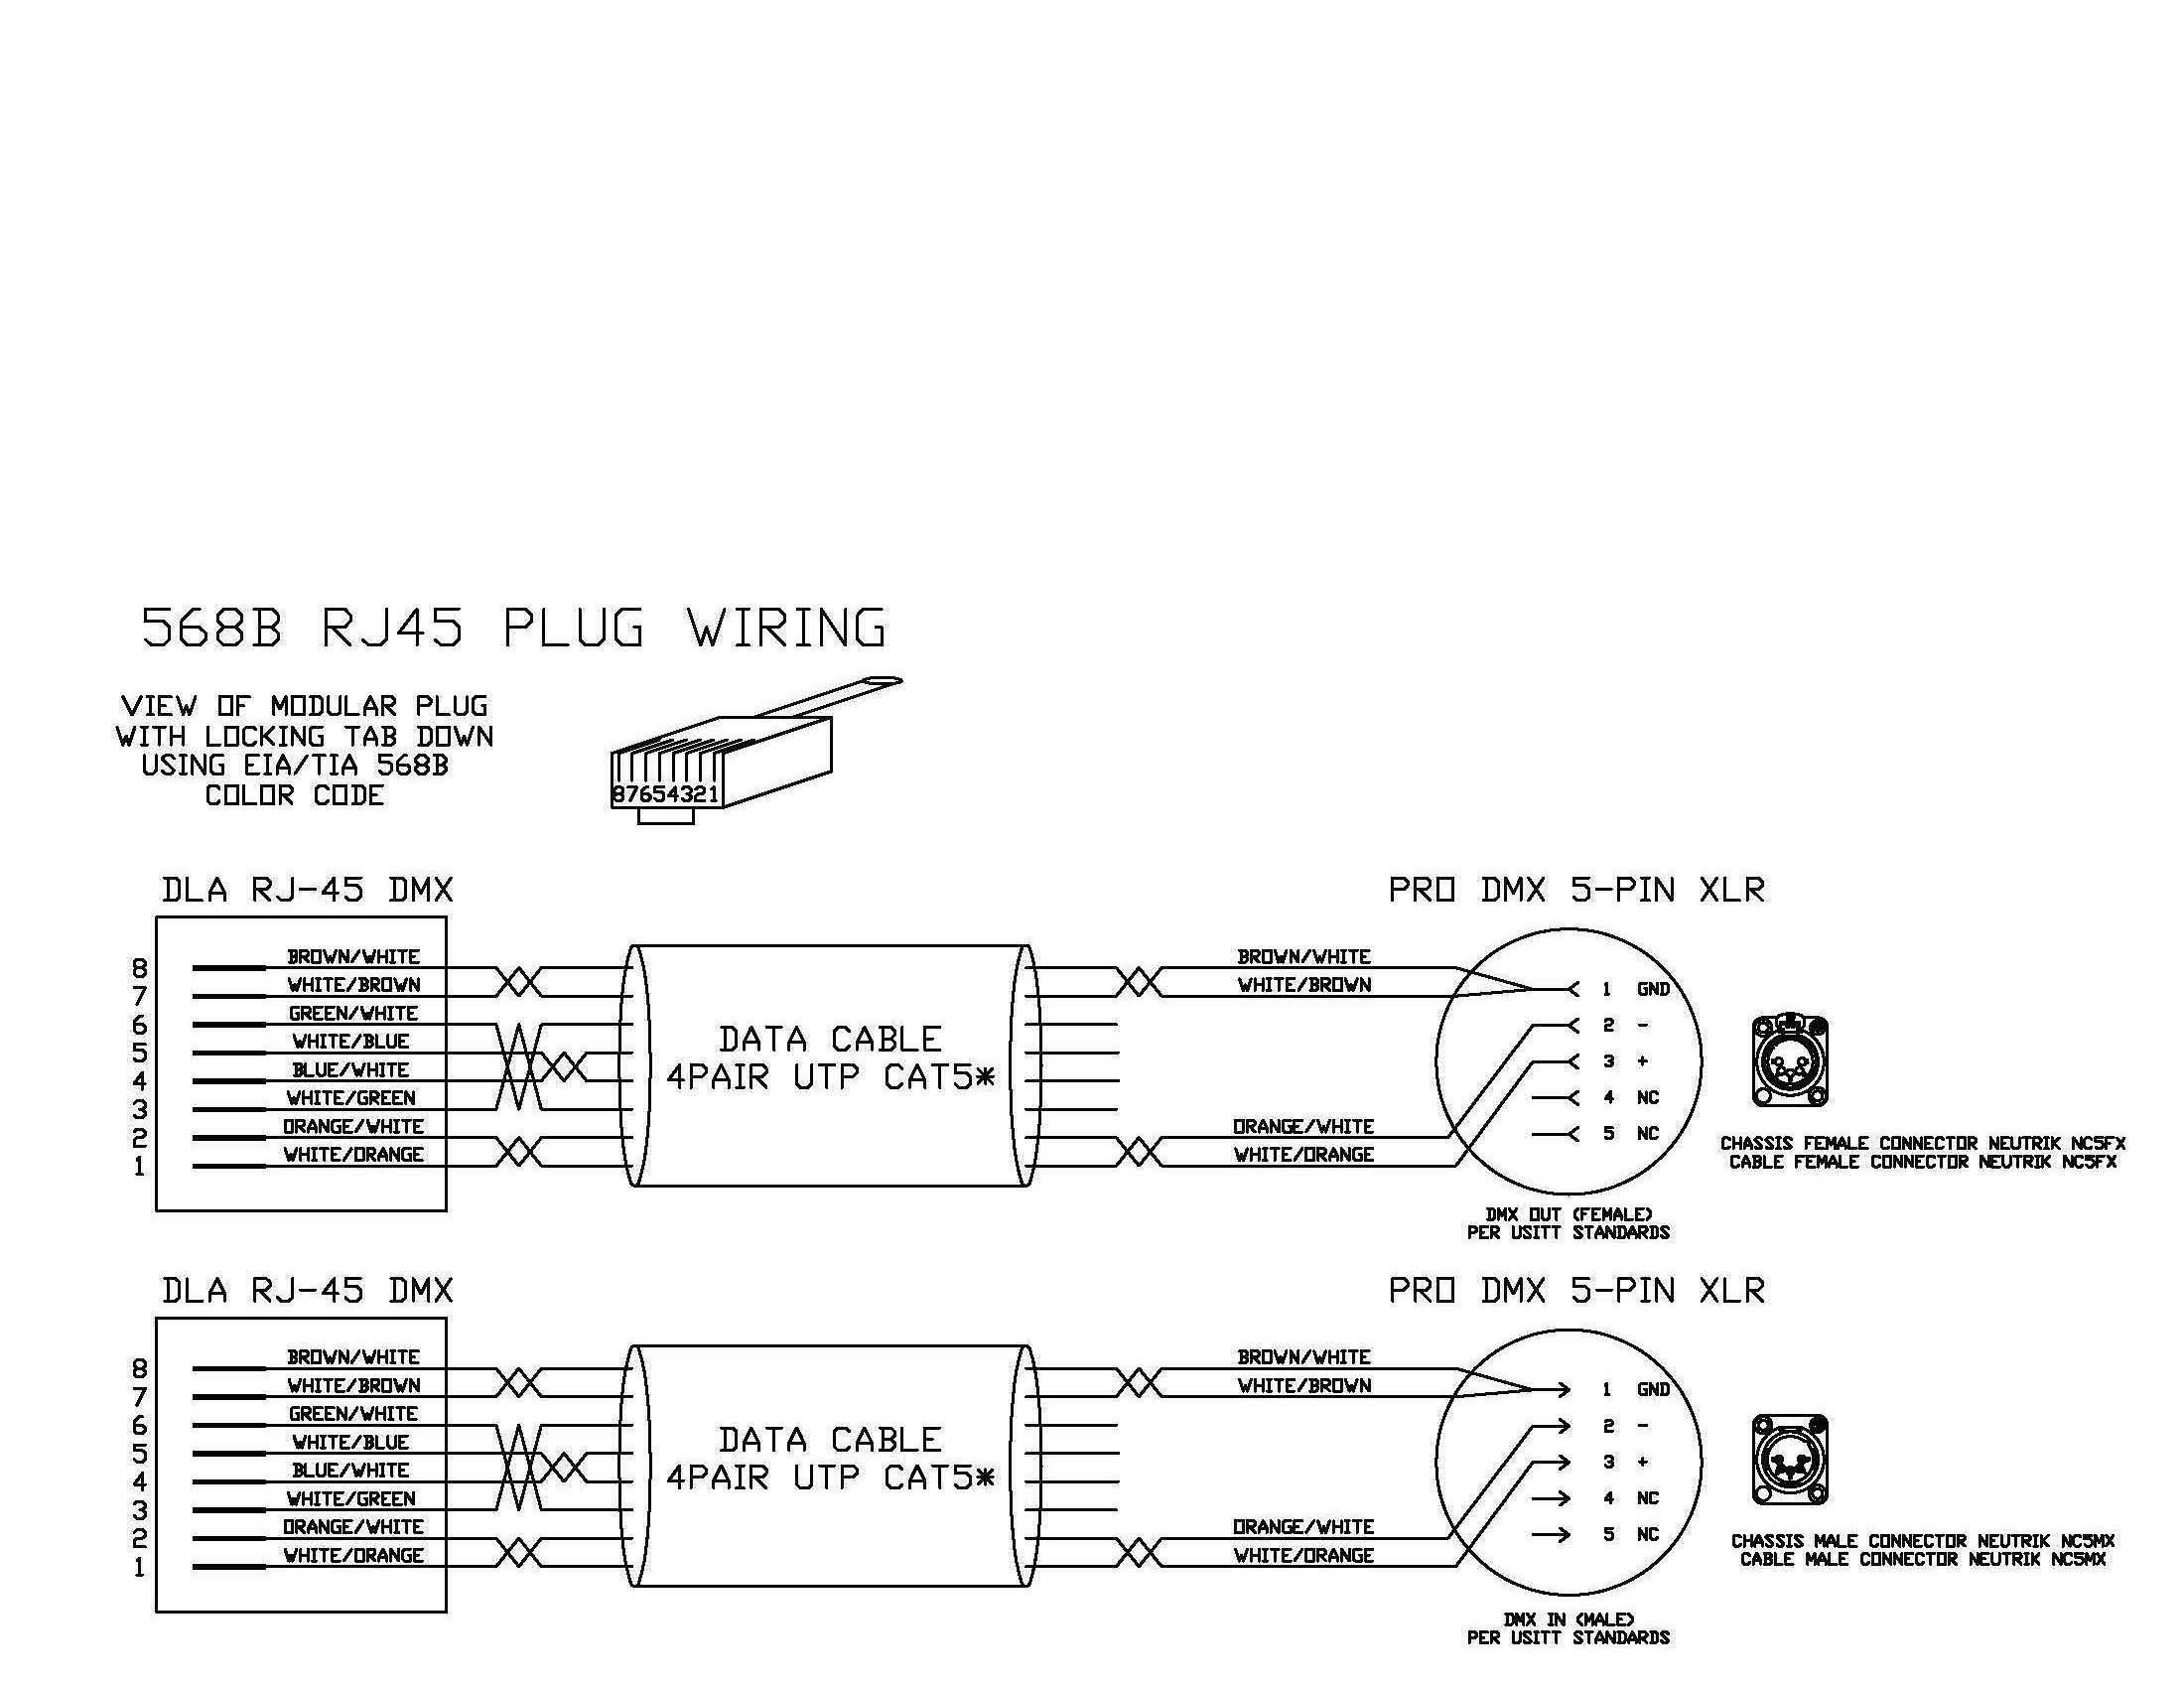 hight resolution of wiring diagram for xlr wiring diagram centrexlr to rj45 wiring diagram xlr electrical wiring diagrams cablesxlr